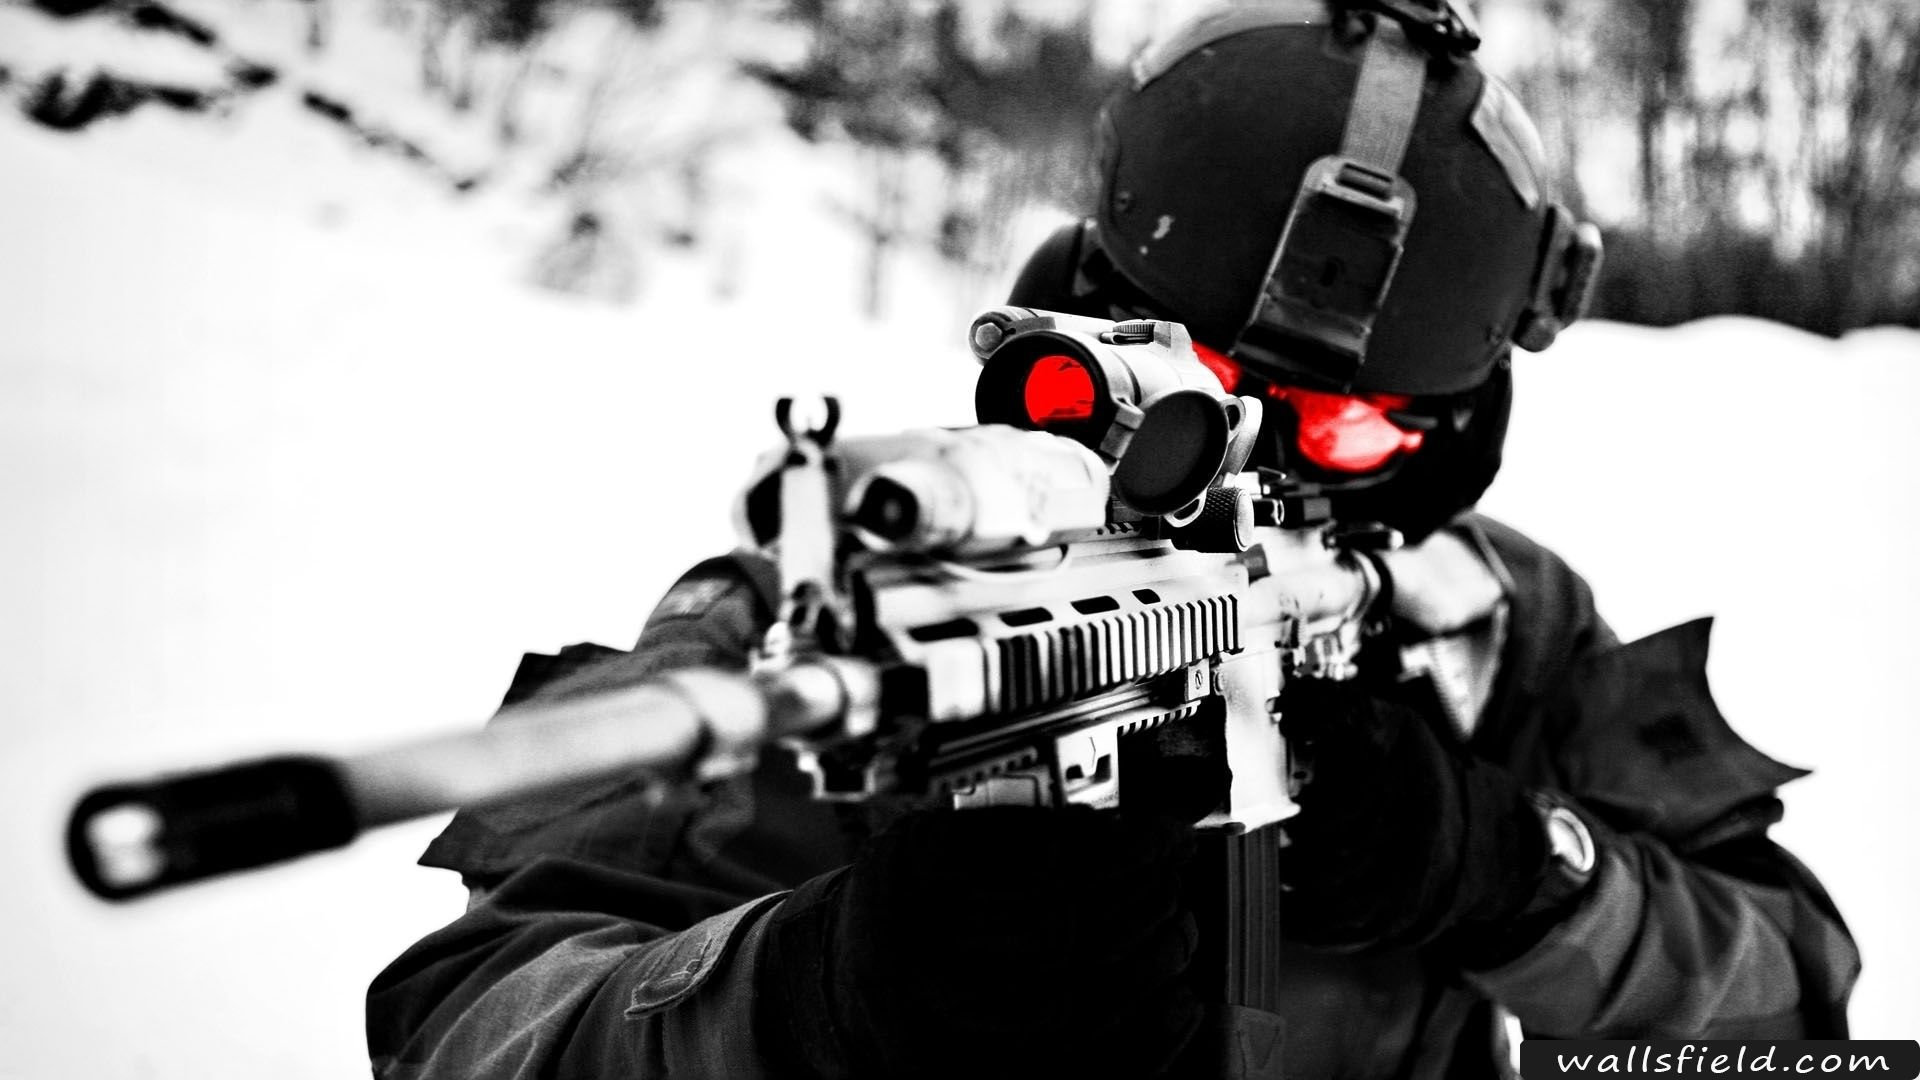 You can view download and comment on sniper free hd wallpapers for hd wallpaper voltagebd Choice Image